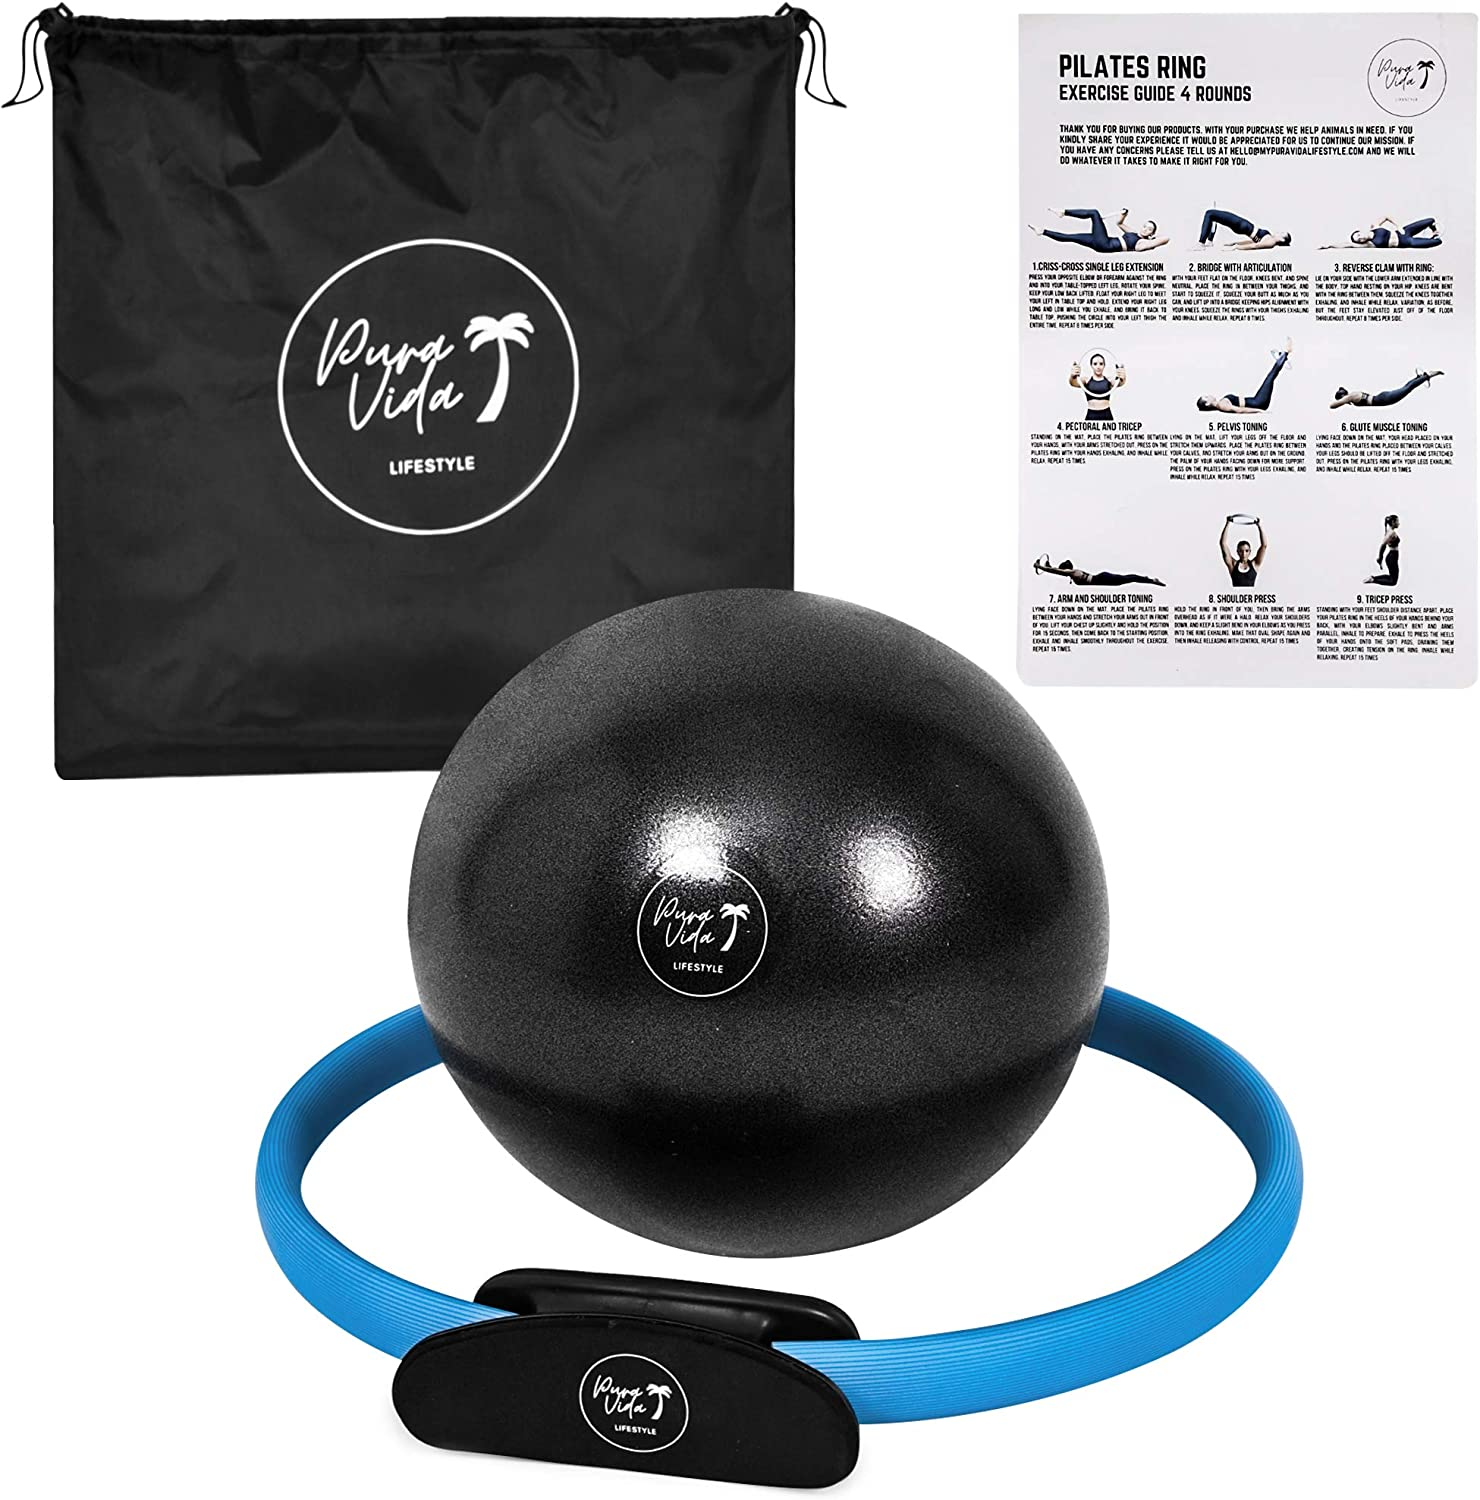 PuraVida Lifestyle Pilates Set Includes Best Pilates Ring 14 Inches and Mini Exercise Ball 9 Inches with Travel Bag for Fitness, Pilates, Yoga, Core Training, Tone Thighs, Legs, ABS, Stability (Blue) : Sports & Outdoors